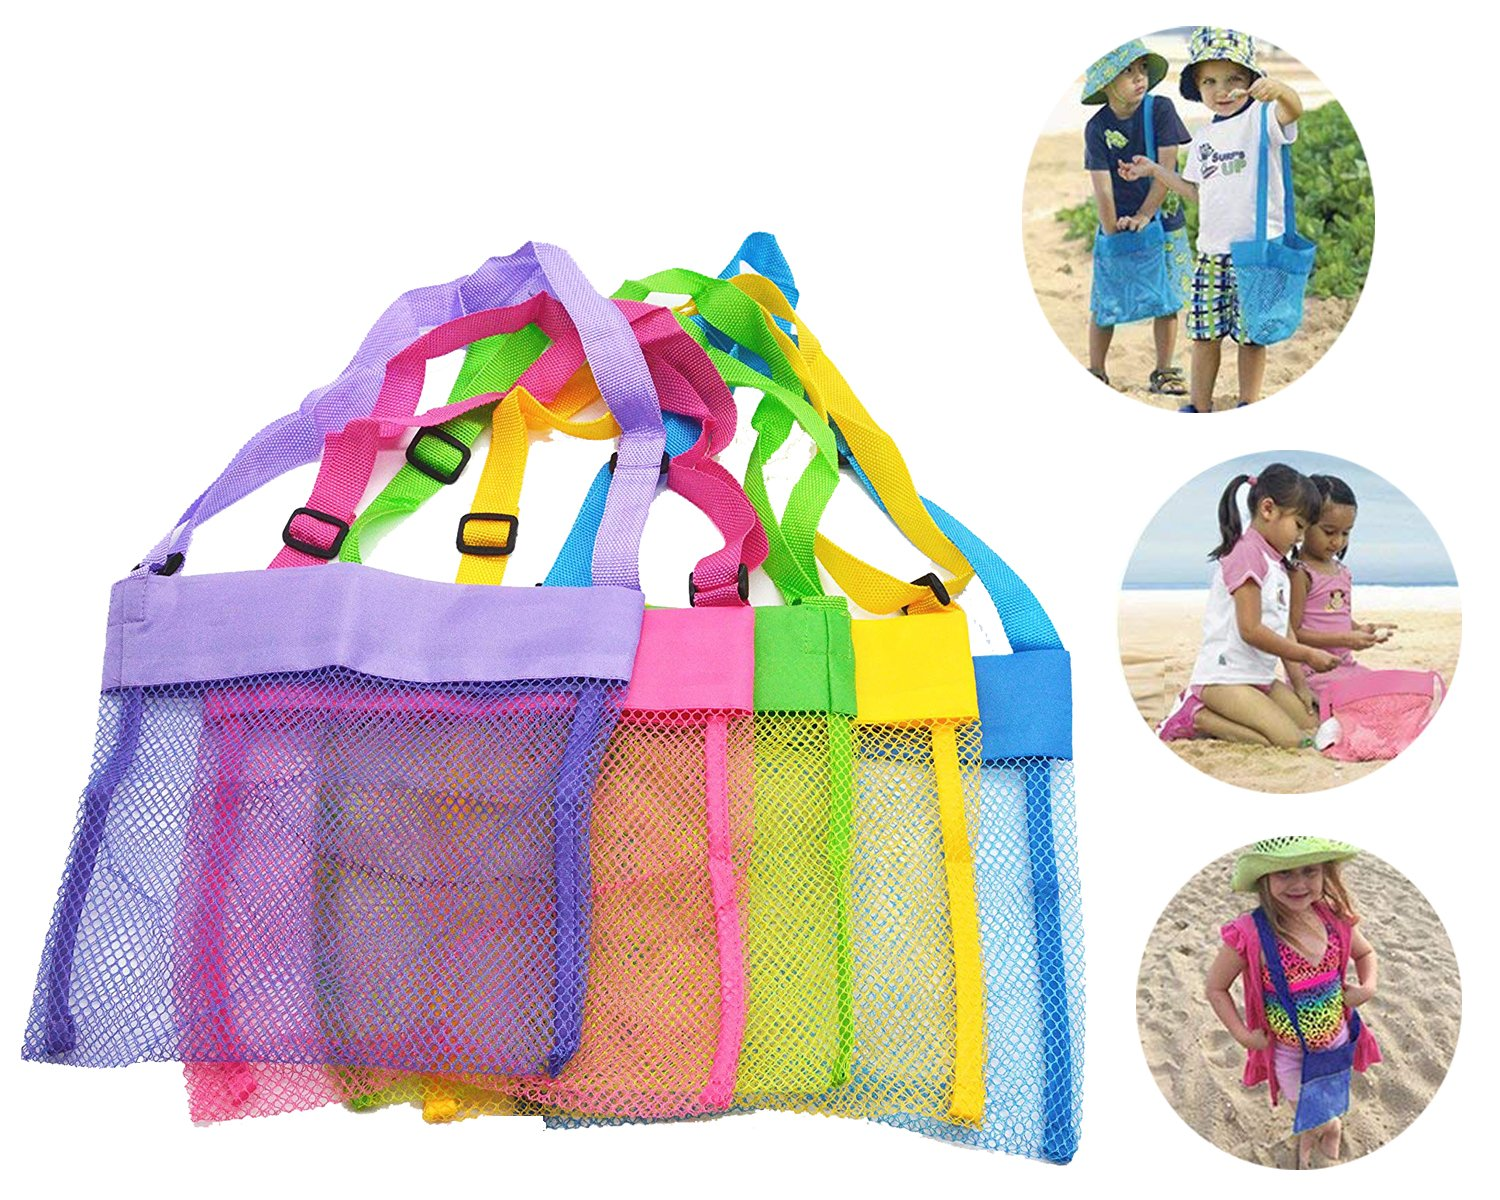 """Bylove 5 Pieces Colorful Mesh Beach Bags Breathable Sea Shell Bags Toy Storage Bags with Adjustable Carrying Straps (5 pieces, 9.8"""" x 9.4"""") by Bylove (Image #1)"""